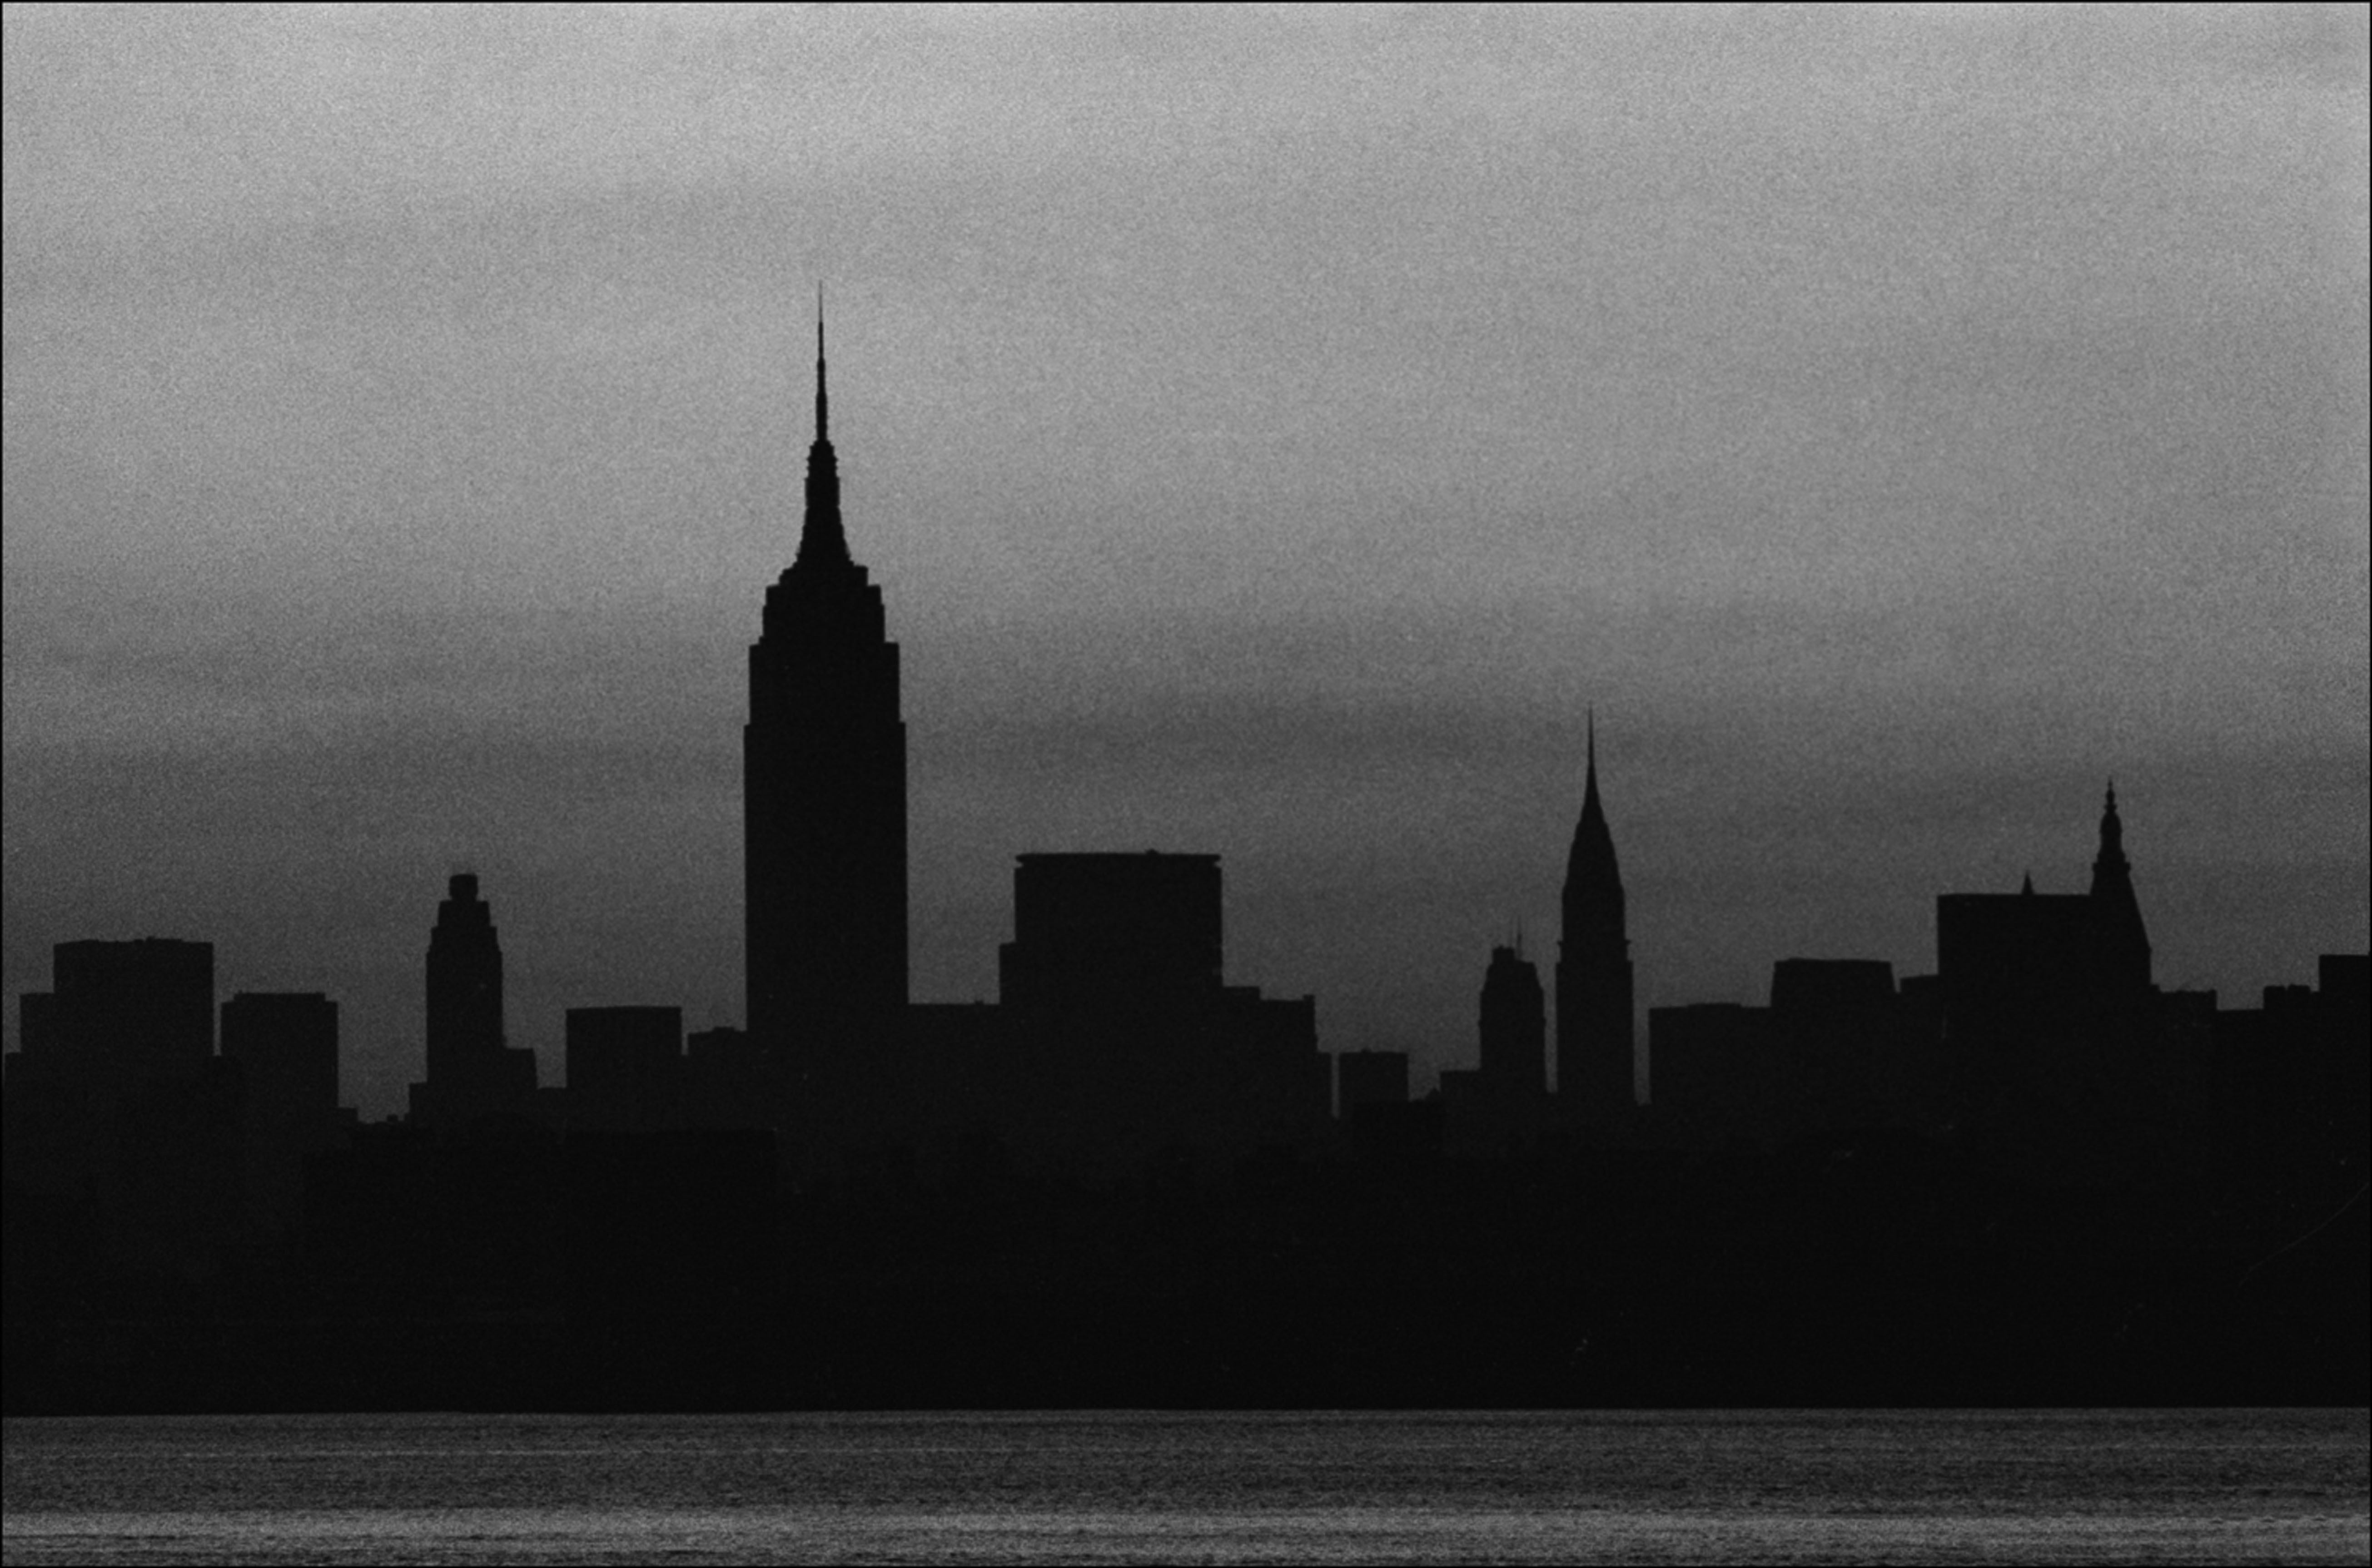 The NYC blackout of 1977 happened 42 years ago today